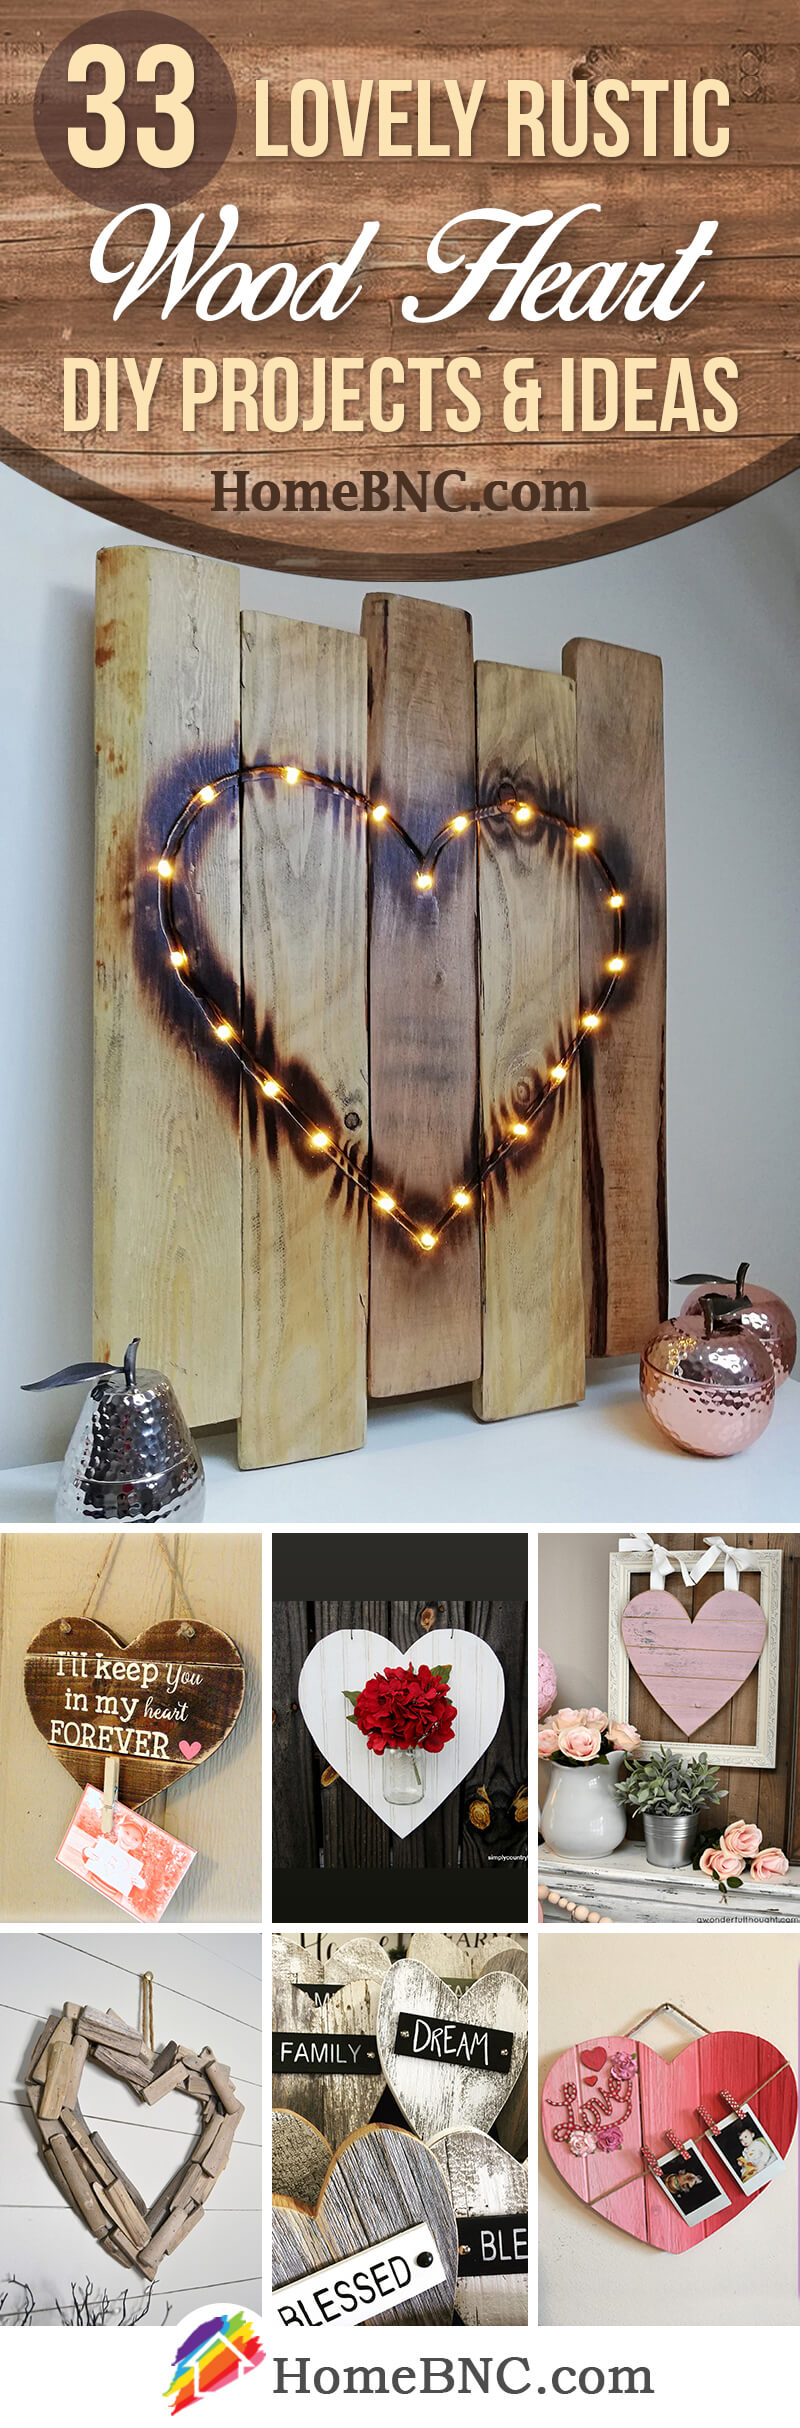 Rustic Wood Heart DIY Ideas